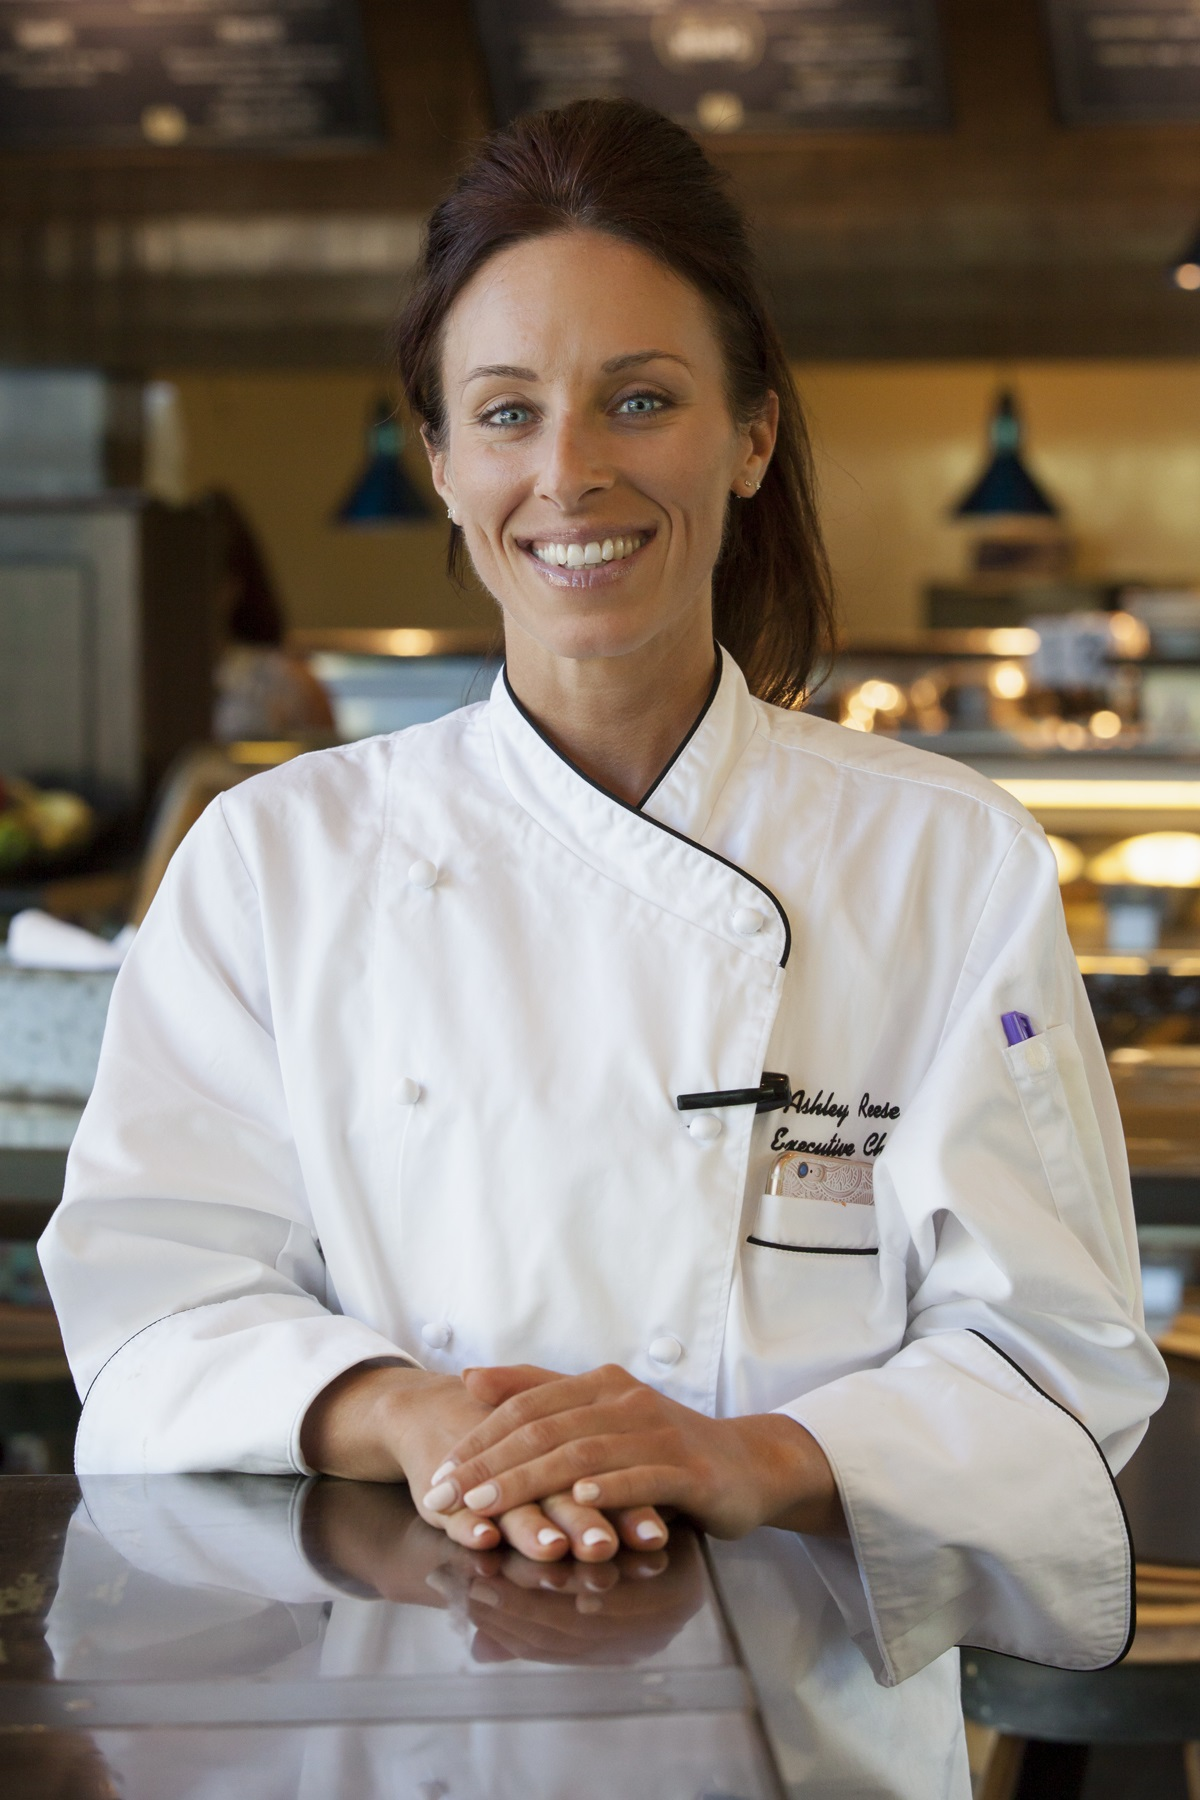 ashley reese has been appointed executive chef at canyon